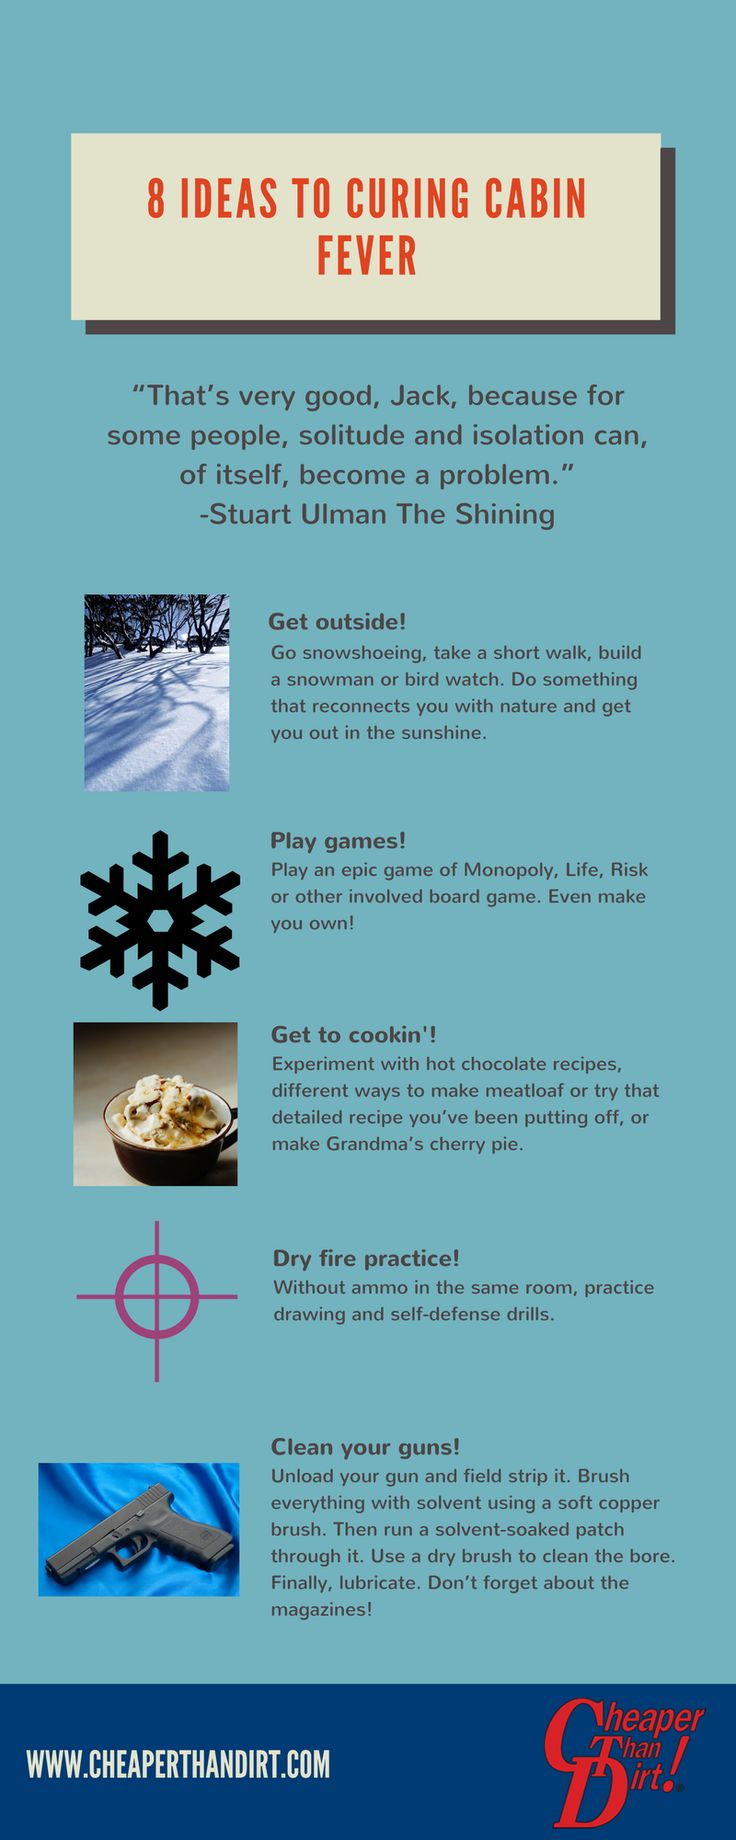 Are you stuck at home because of winter weather? Here are 11 ideas to help you cure cabin fever.  #winter #winterishere #winteriscoming #snow #winterstorm #snowpocalypse